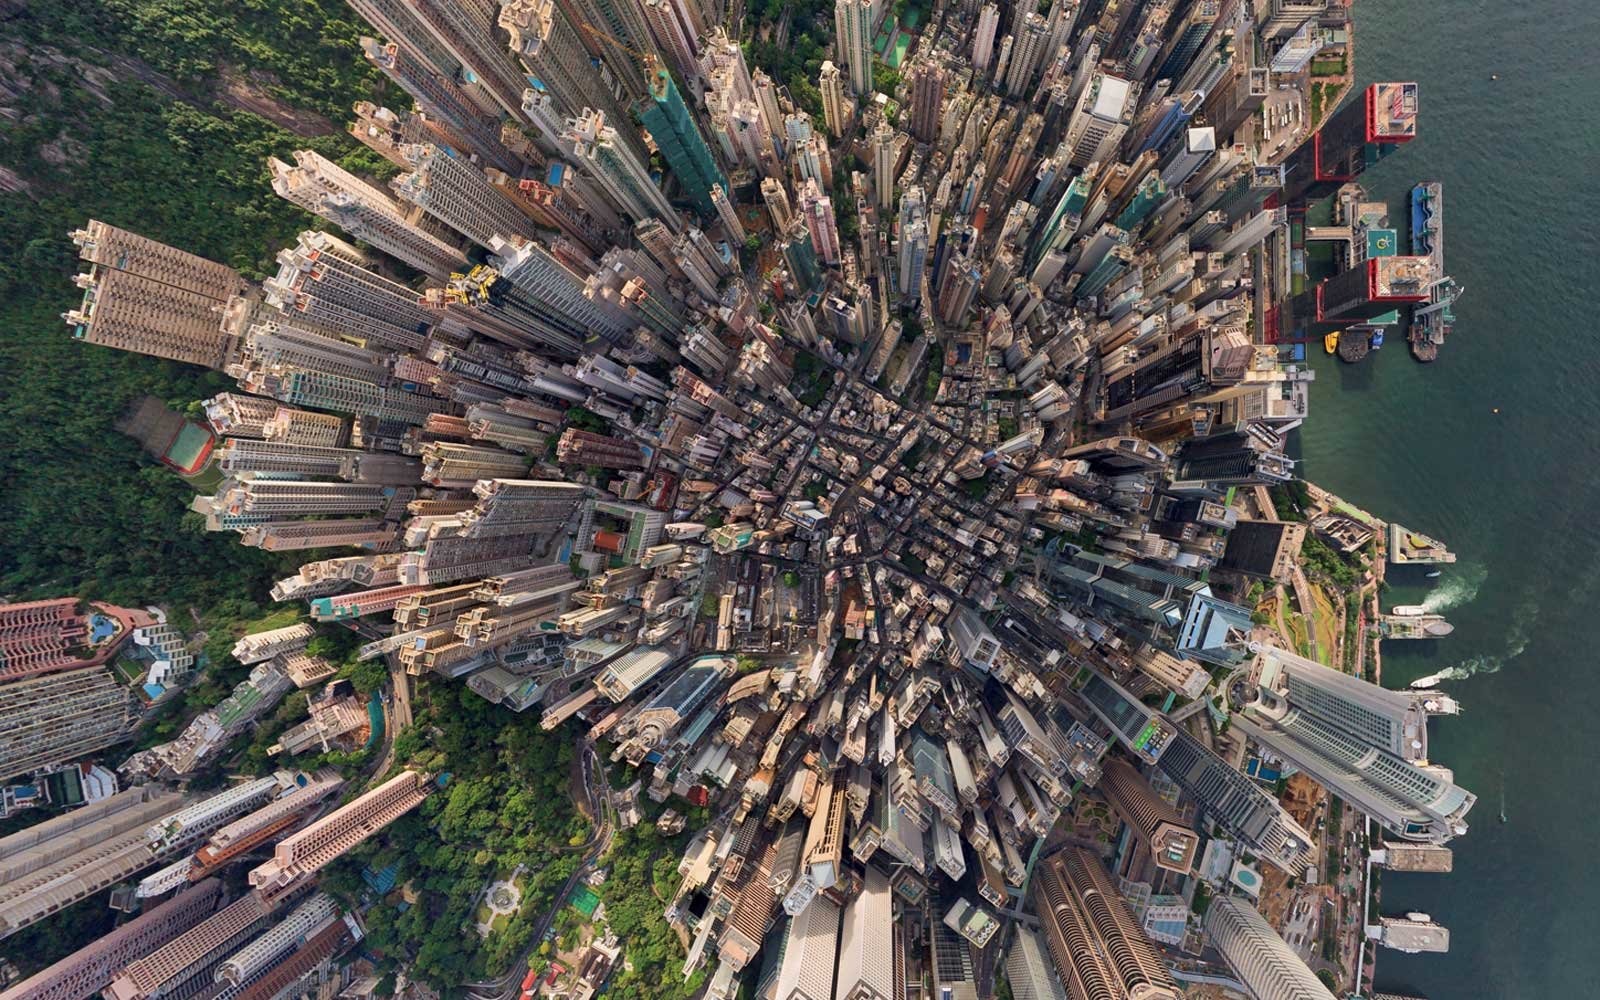 12 Aerial Photos That Show the World in Ways You've Never Seen